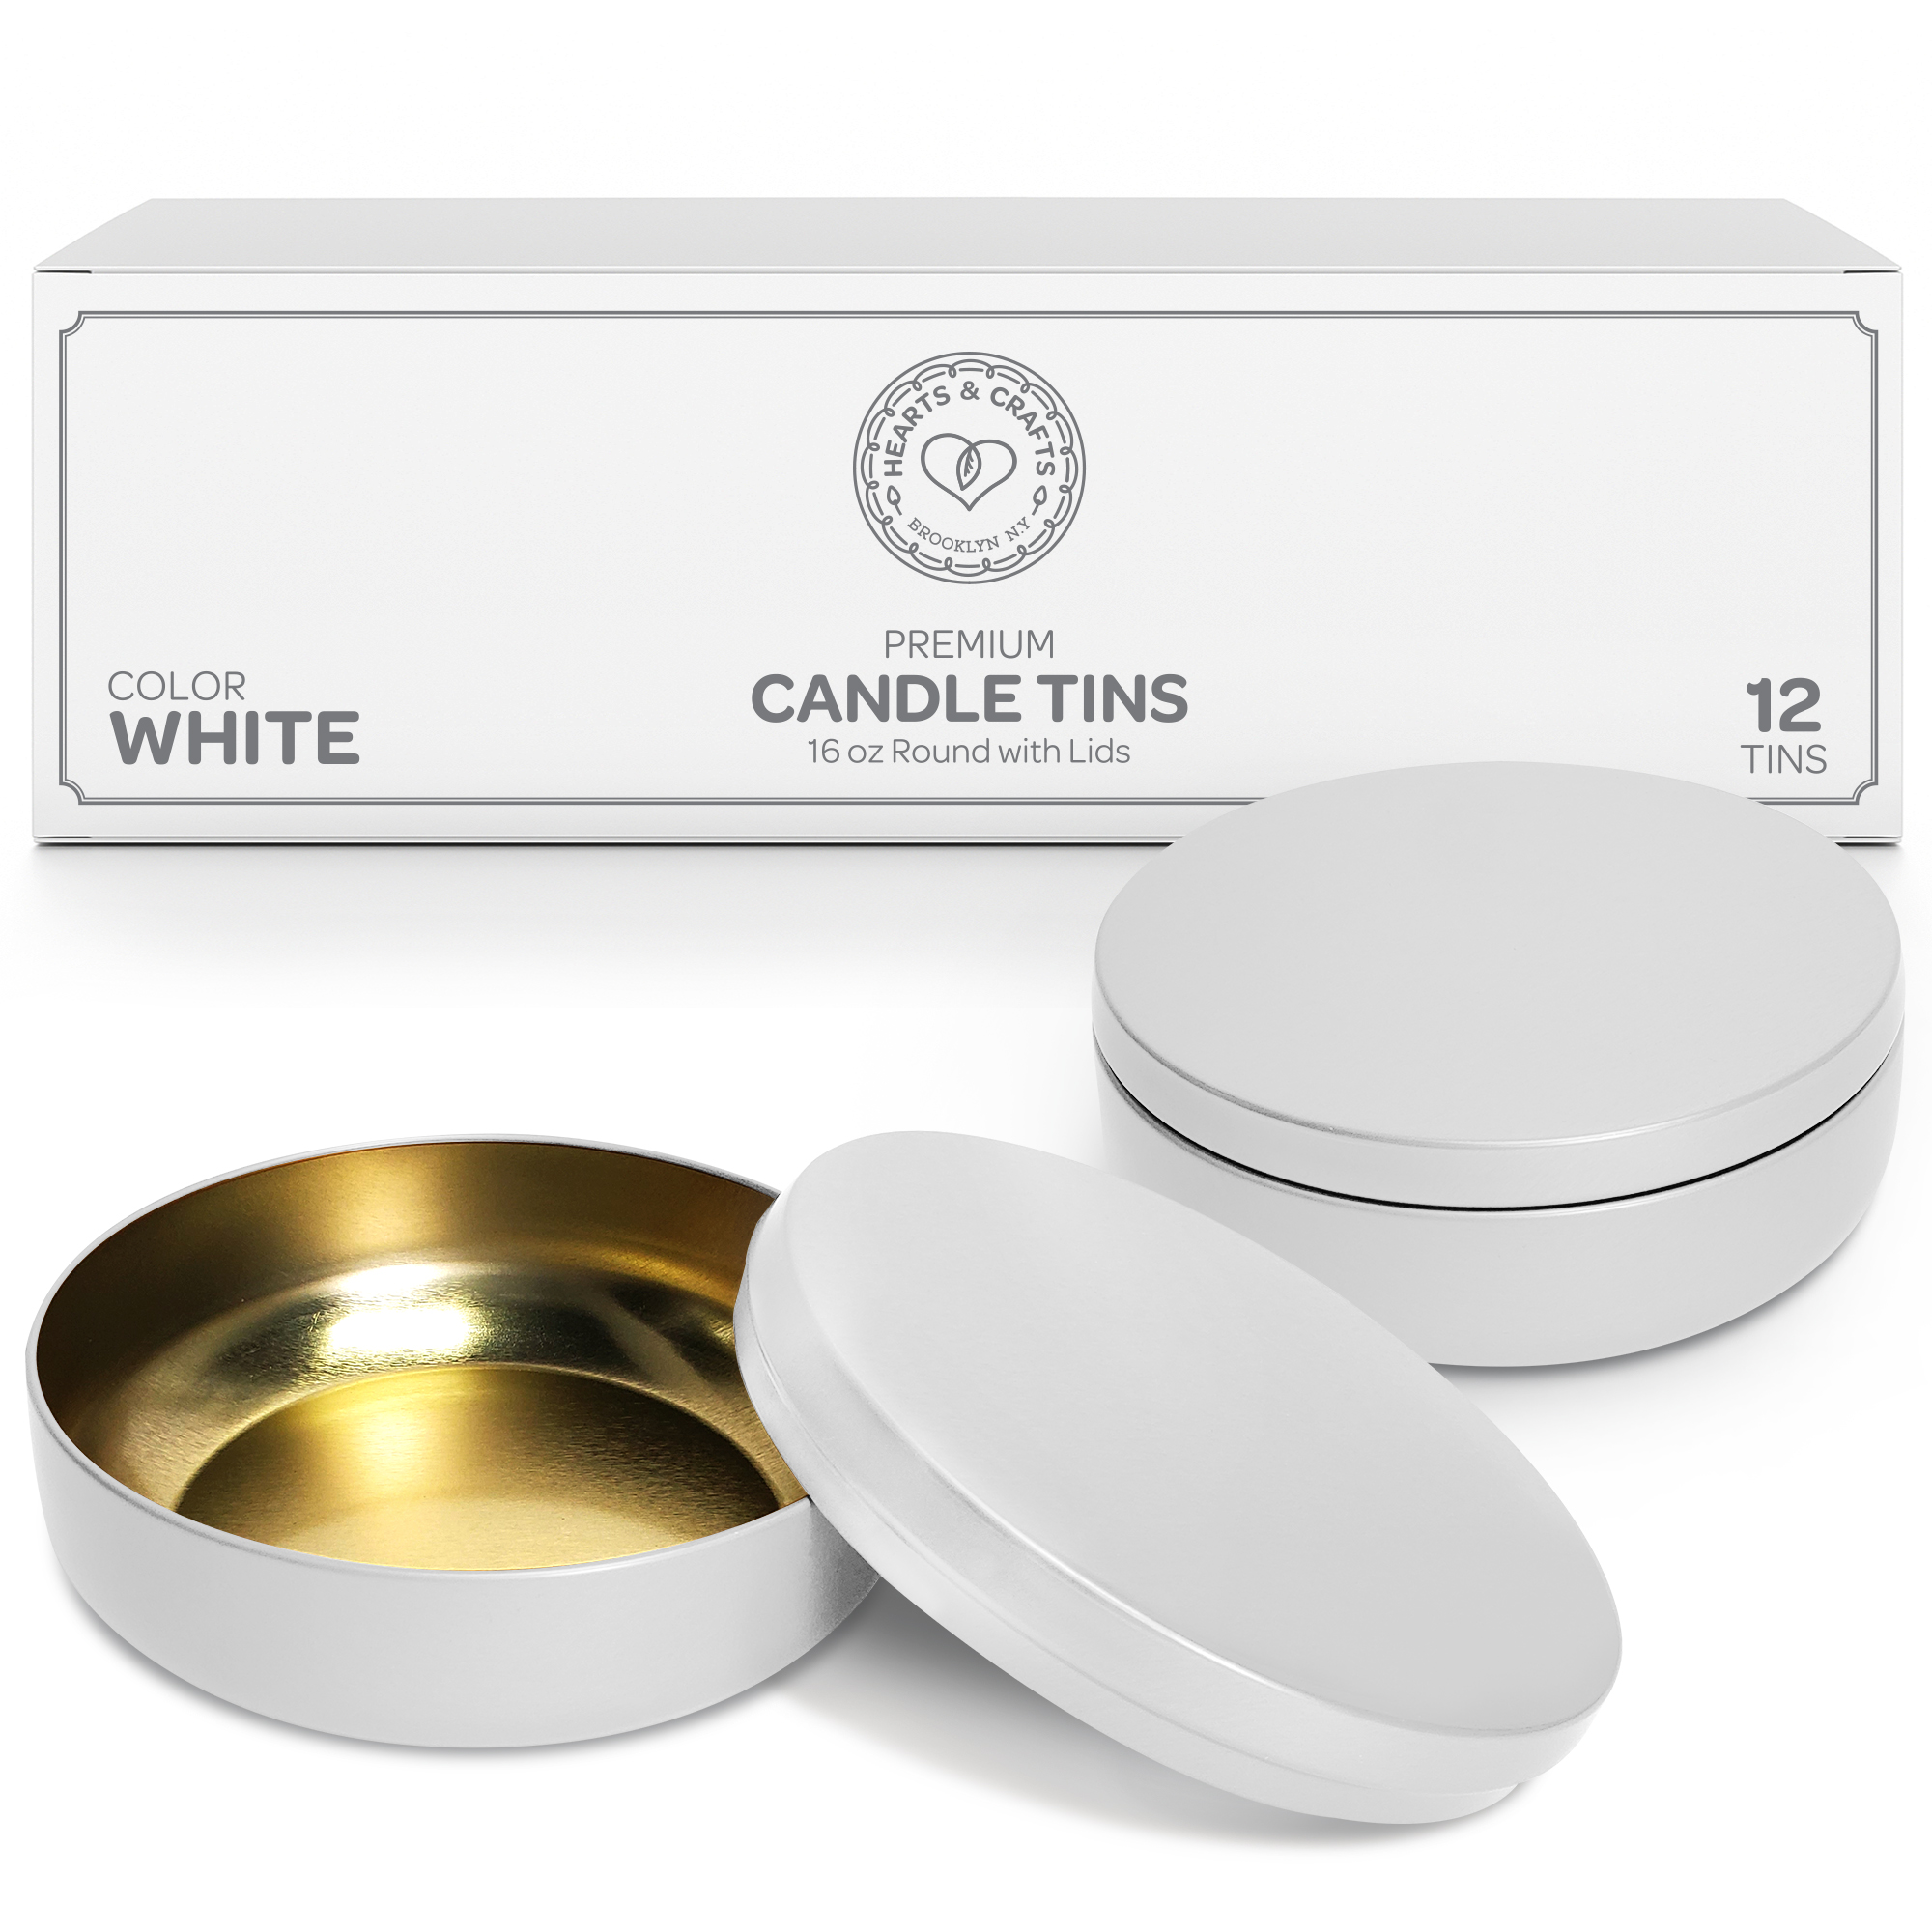 16oz White Candle Tins – 12 Count